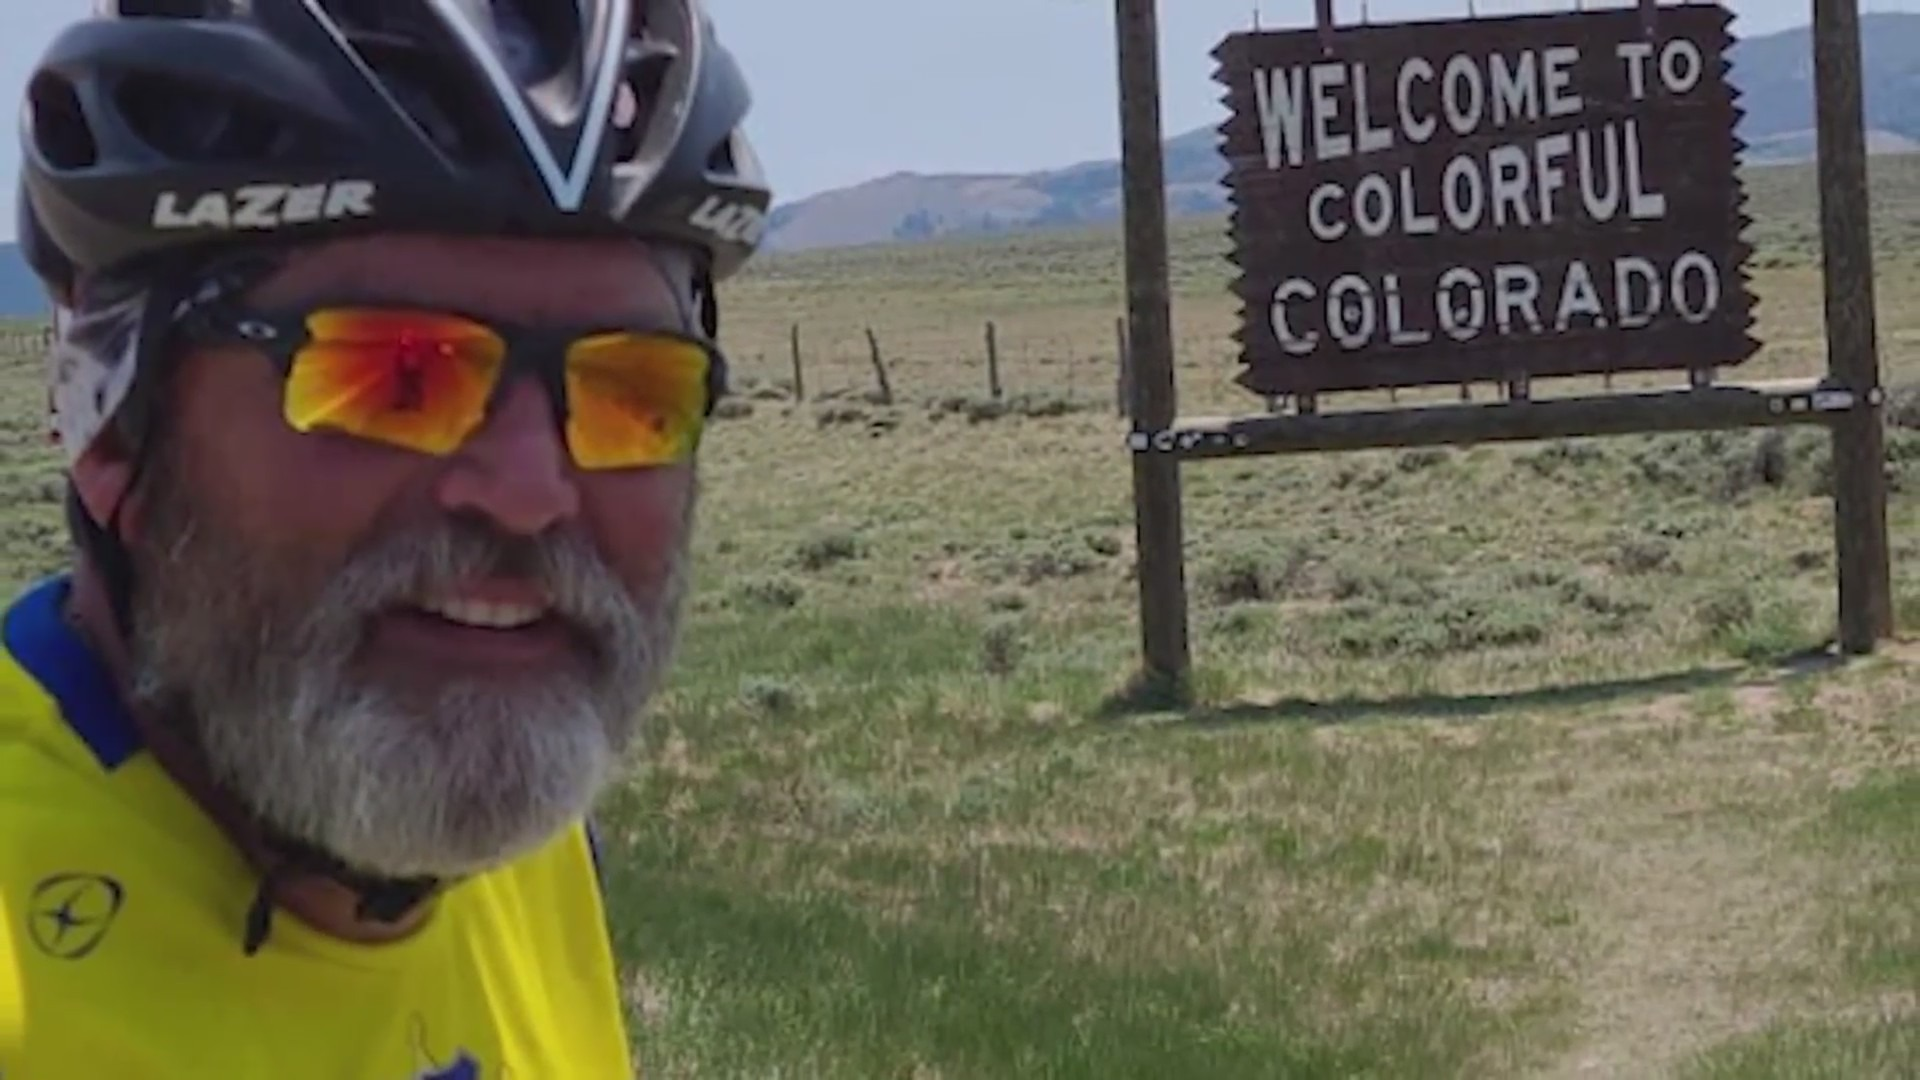 """A close-up of a man with sunglasses and a helmet and a white beard and mustache with a field in the background with a """"Welcome to Colorful Colorado"""" wooden sign and mountains in the distance"""